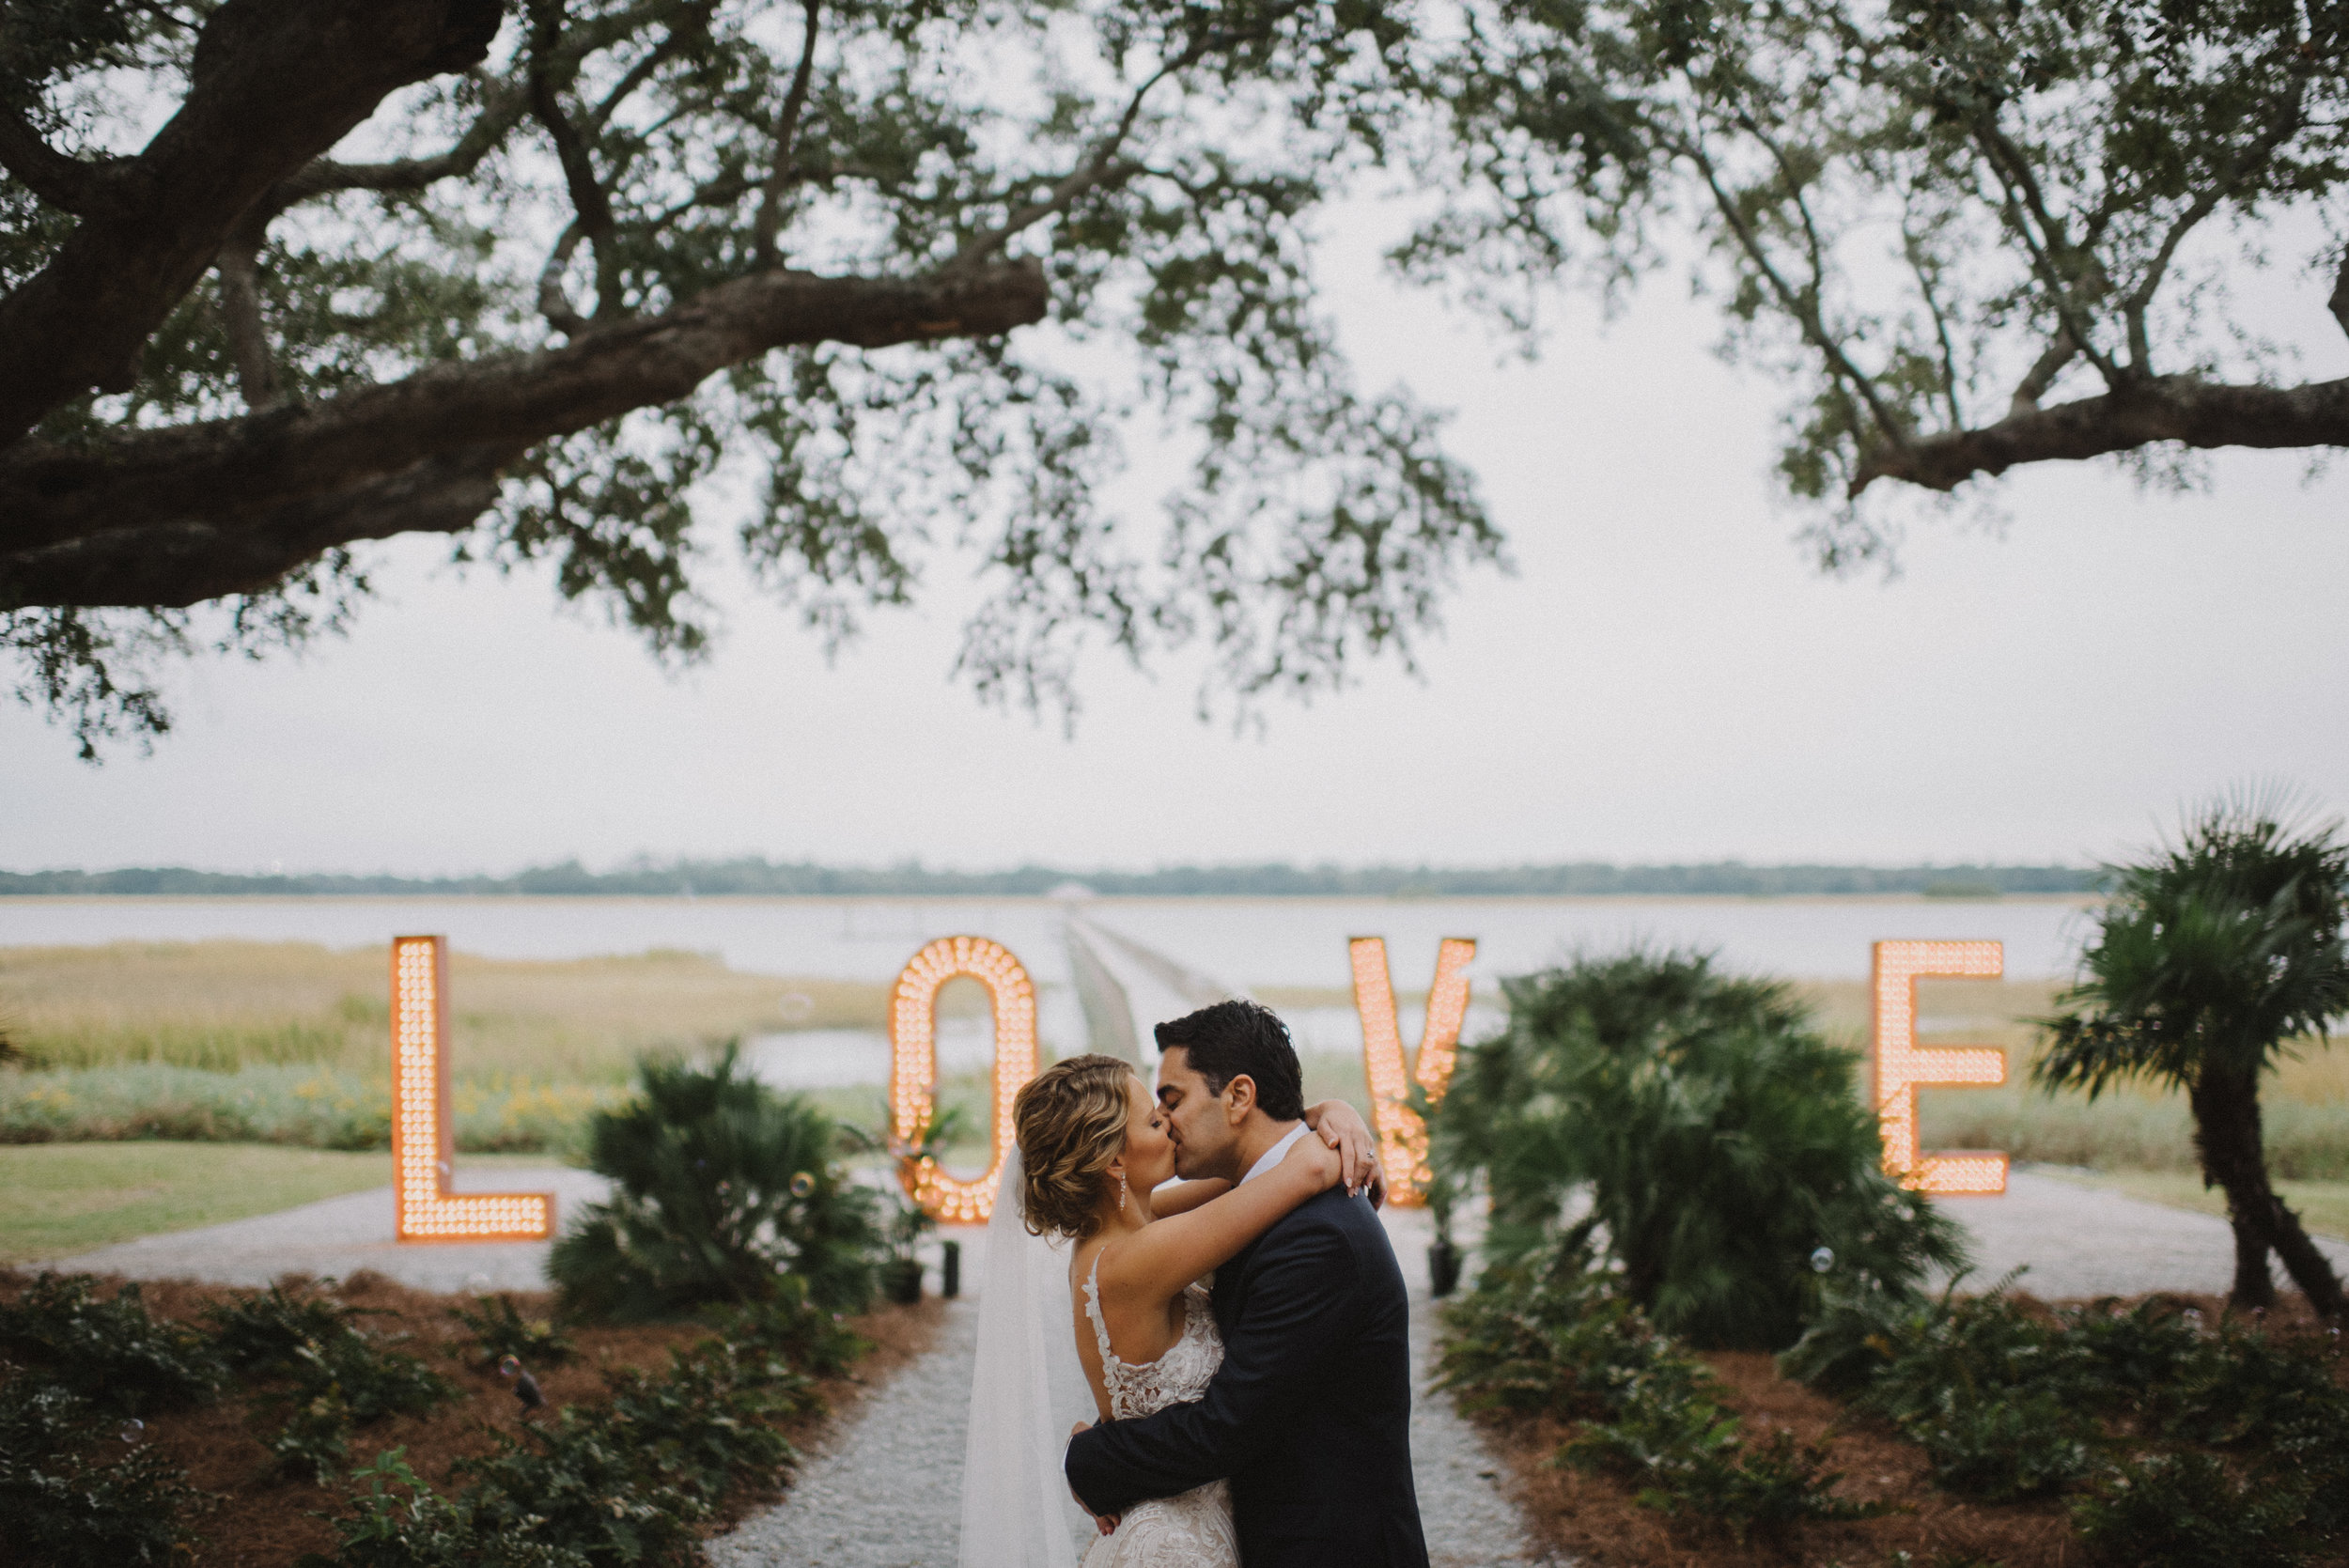 Wedding Tips… - Here's our tips on how you can help us make your video the BEST it can be. At the end of the day it's YOUR wedding so these are just recommendations based on our professional experience.